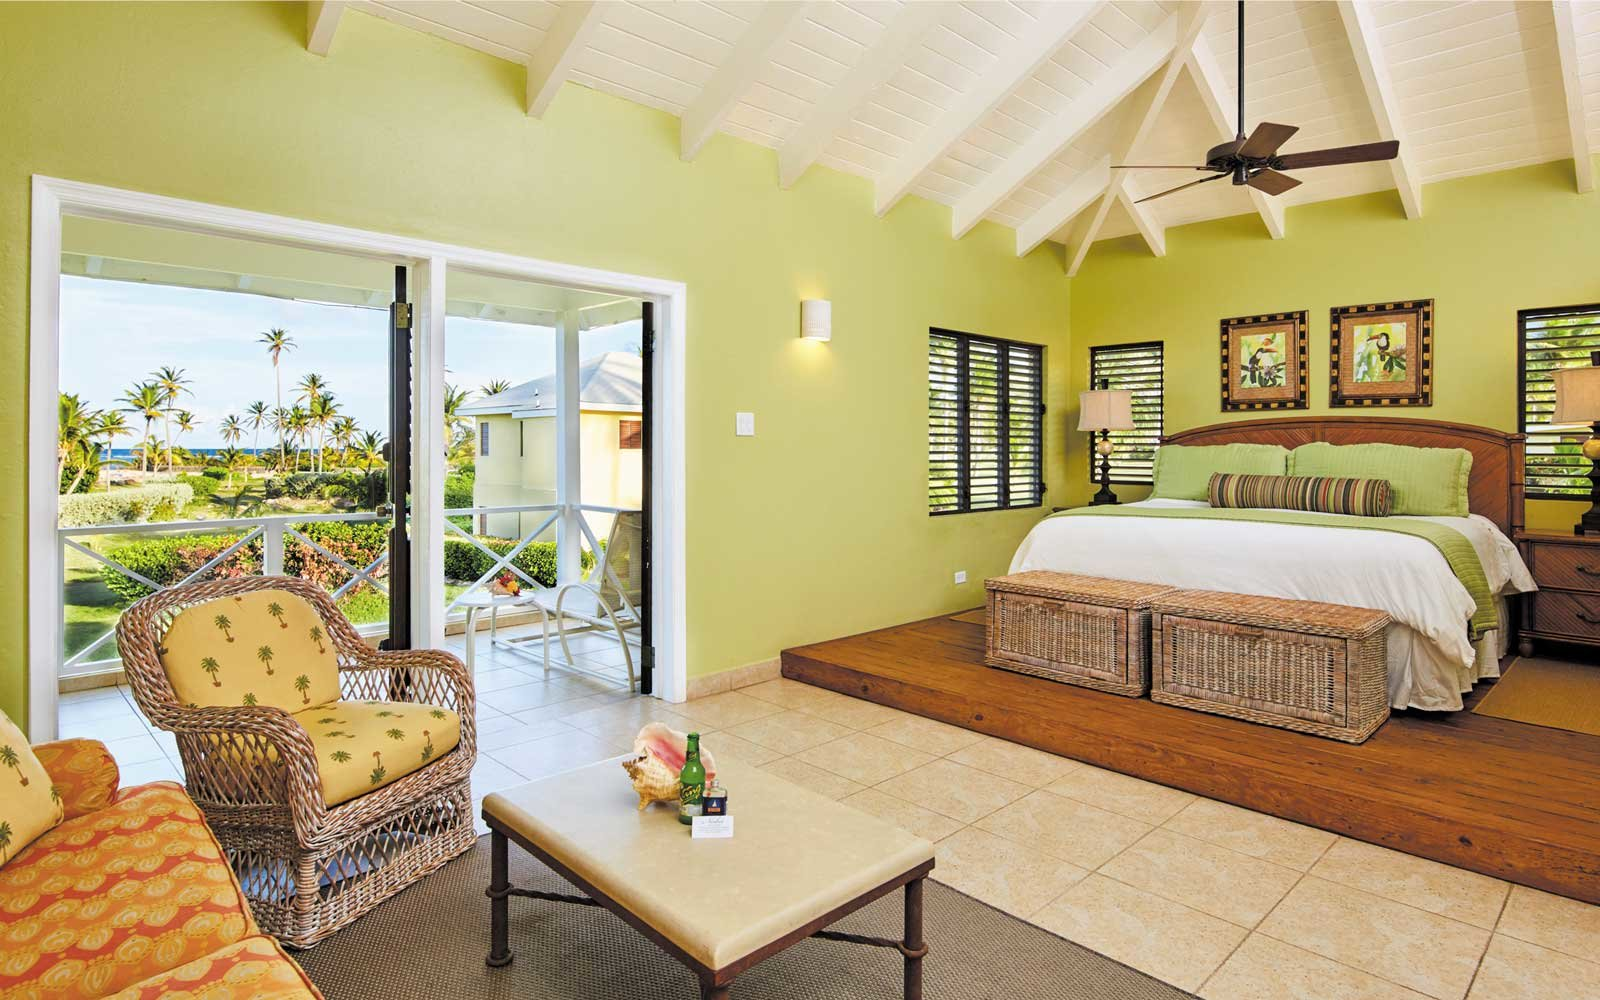 13. Nisbet Plantation Beach Club, Nevis